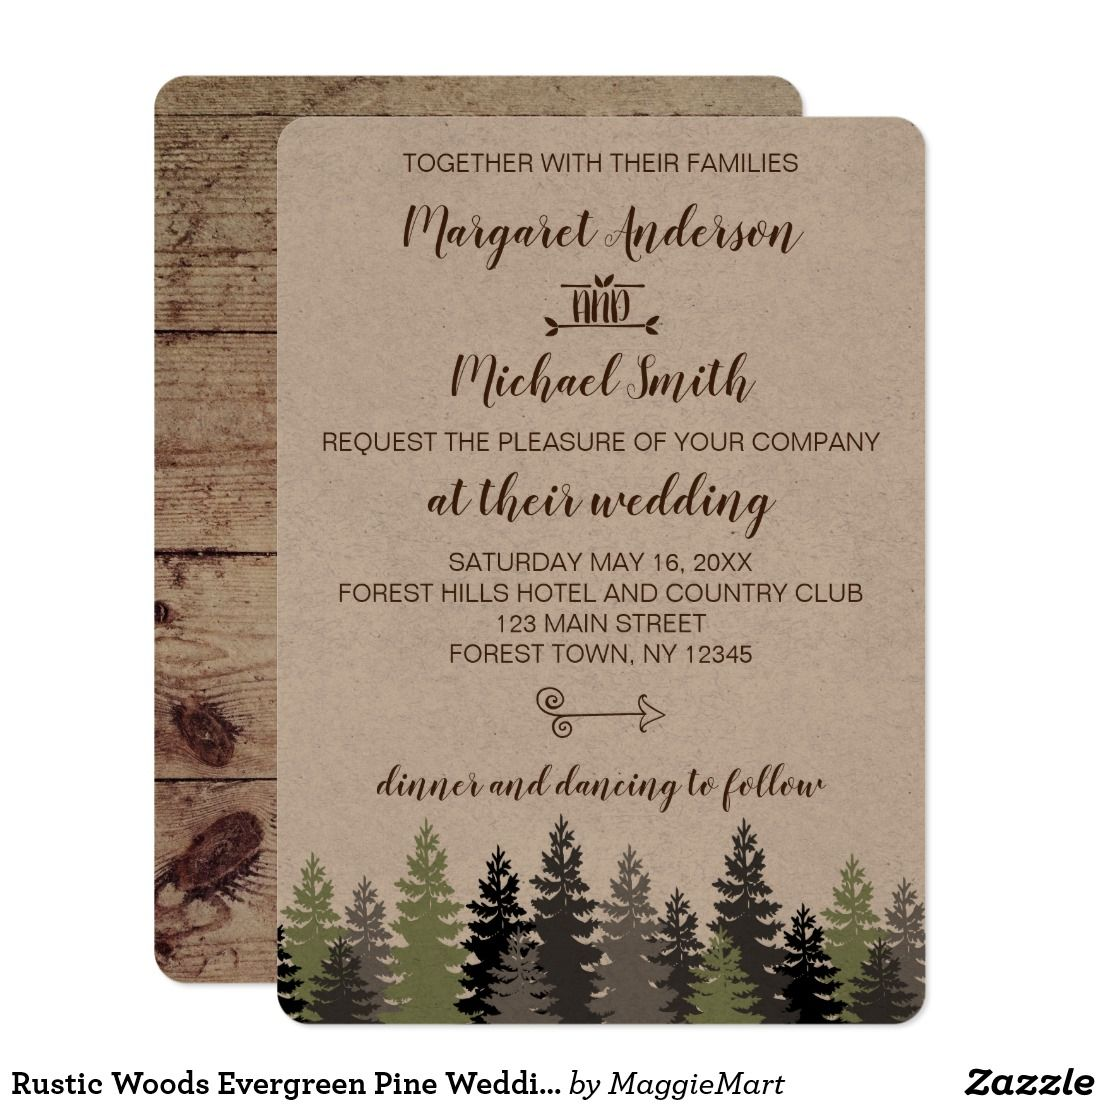 Rustic Woods Evergreen Pine Wedding Invitation Weddings